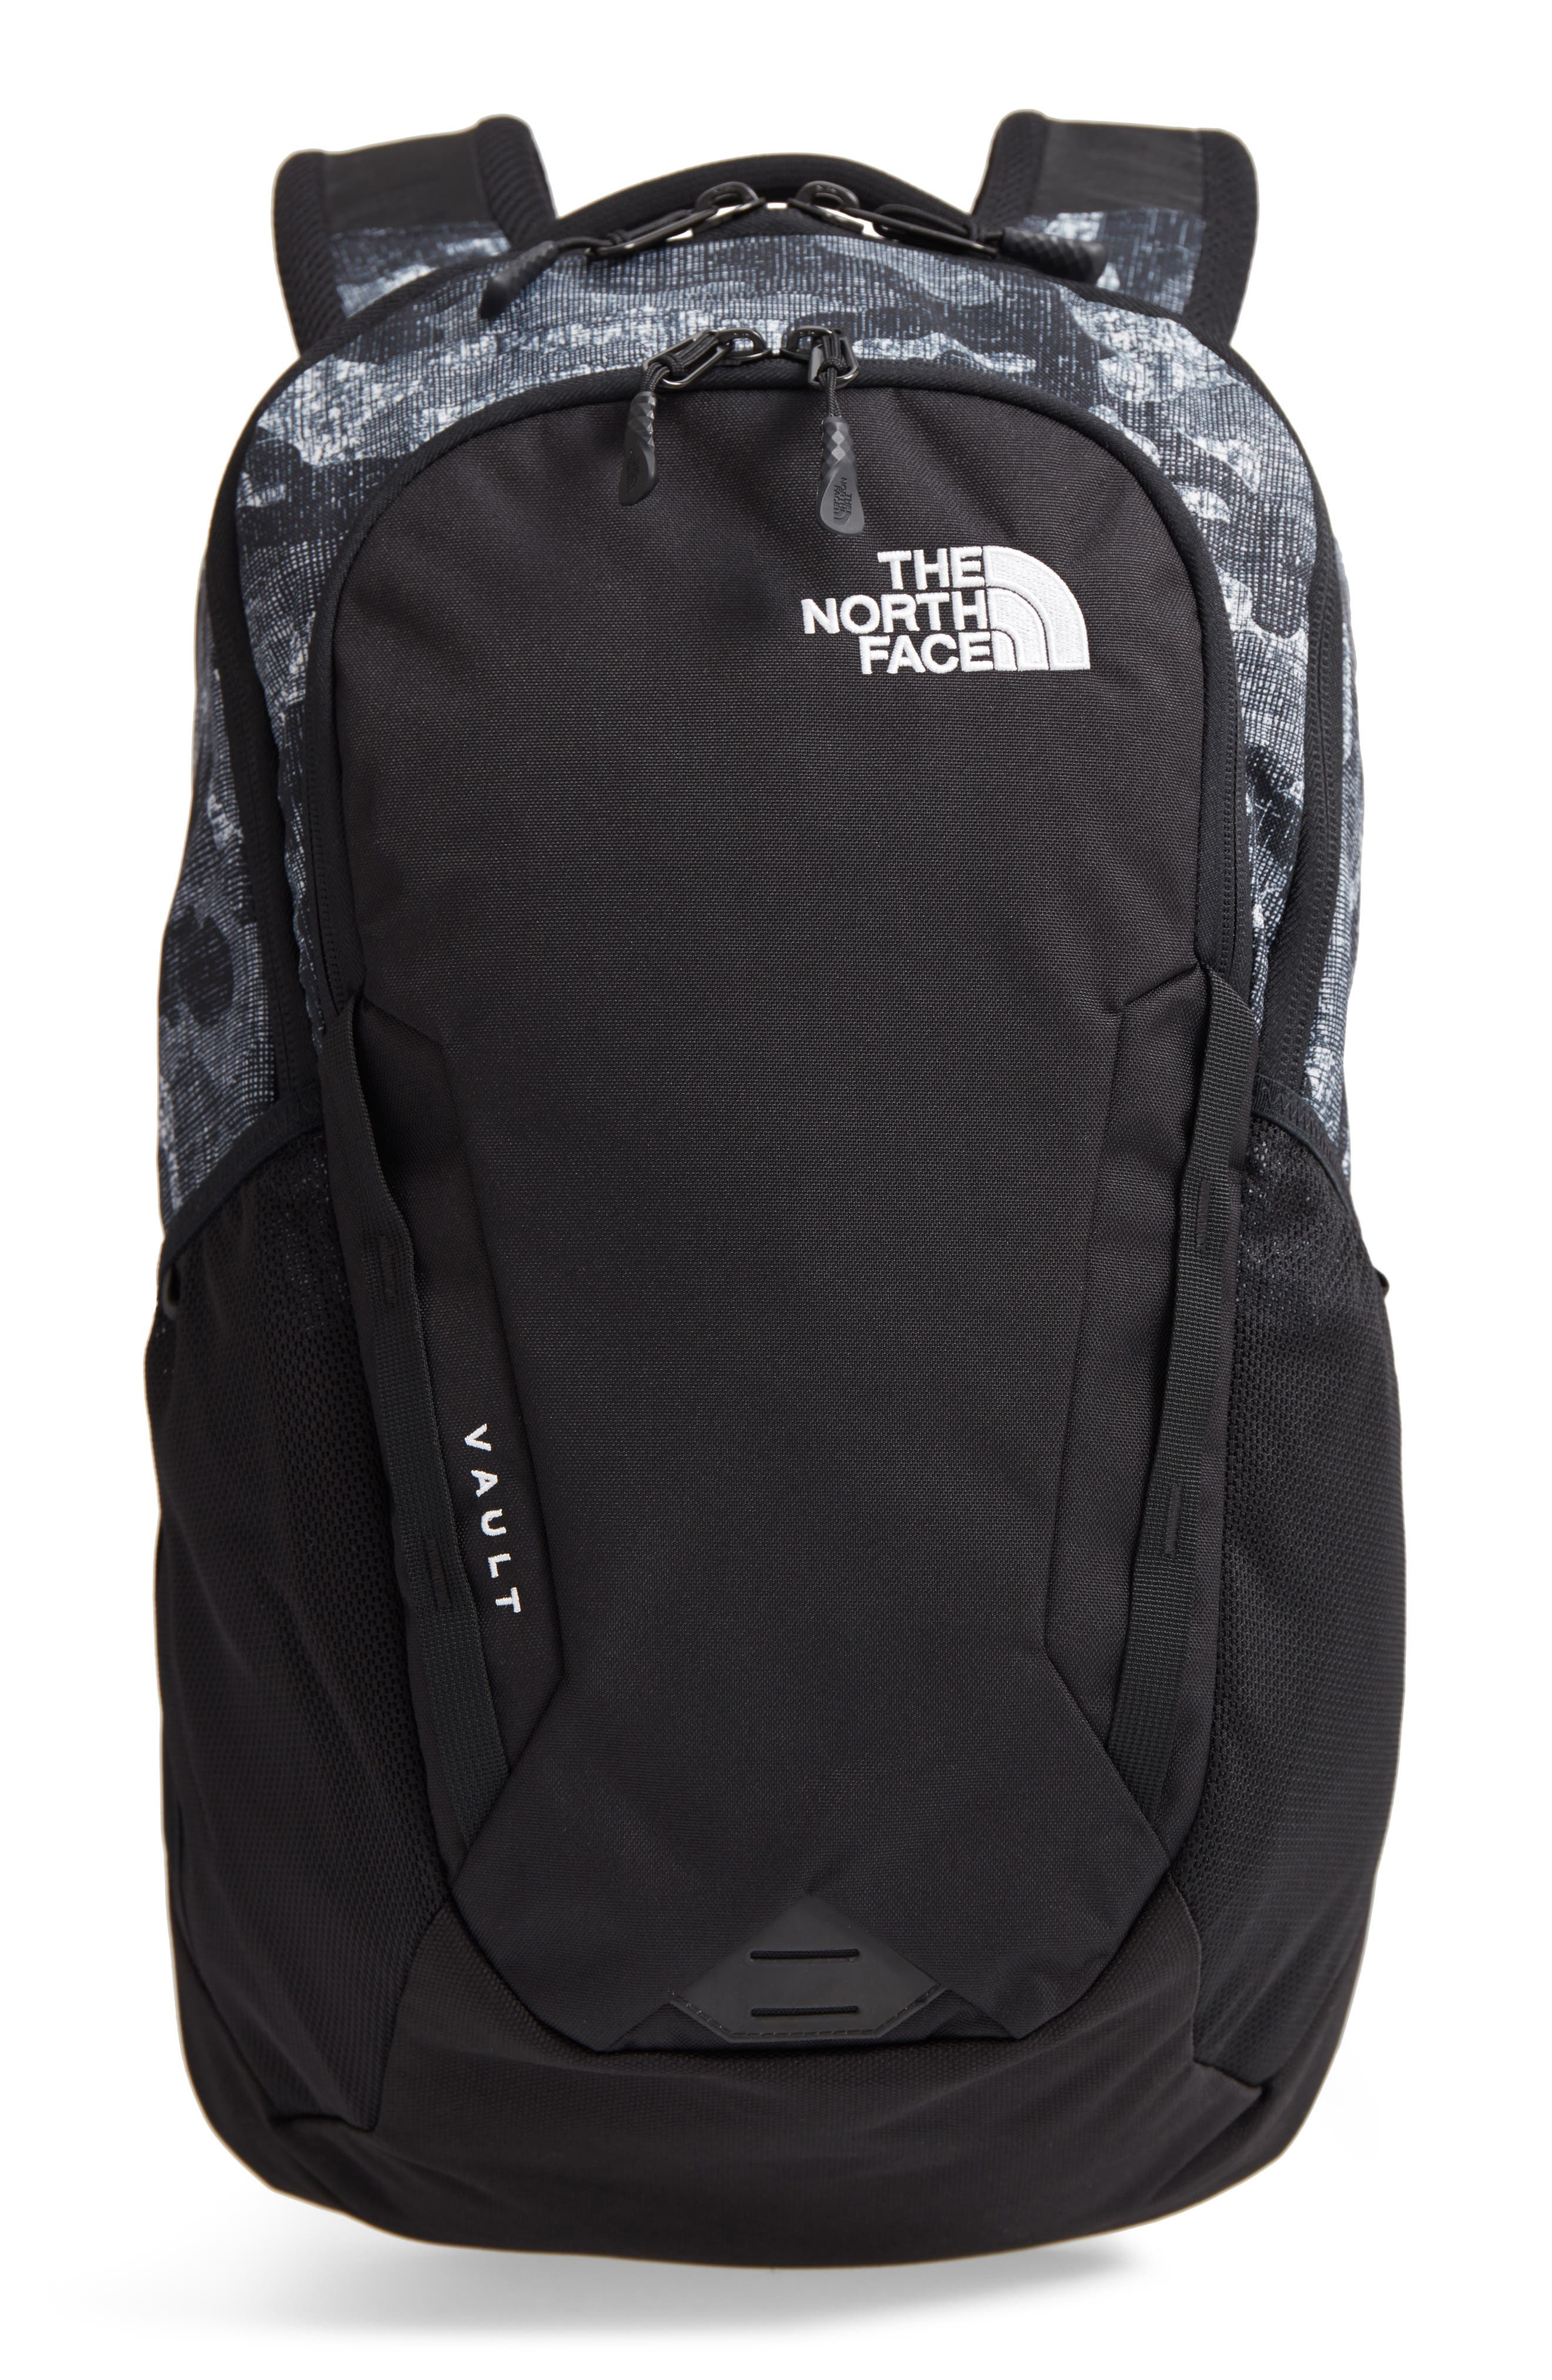 Vault Backpack,                         Main,                         color, Tnf Black Textured Camo Print